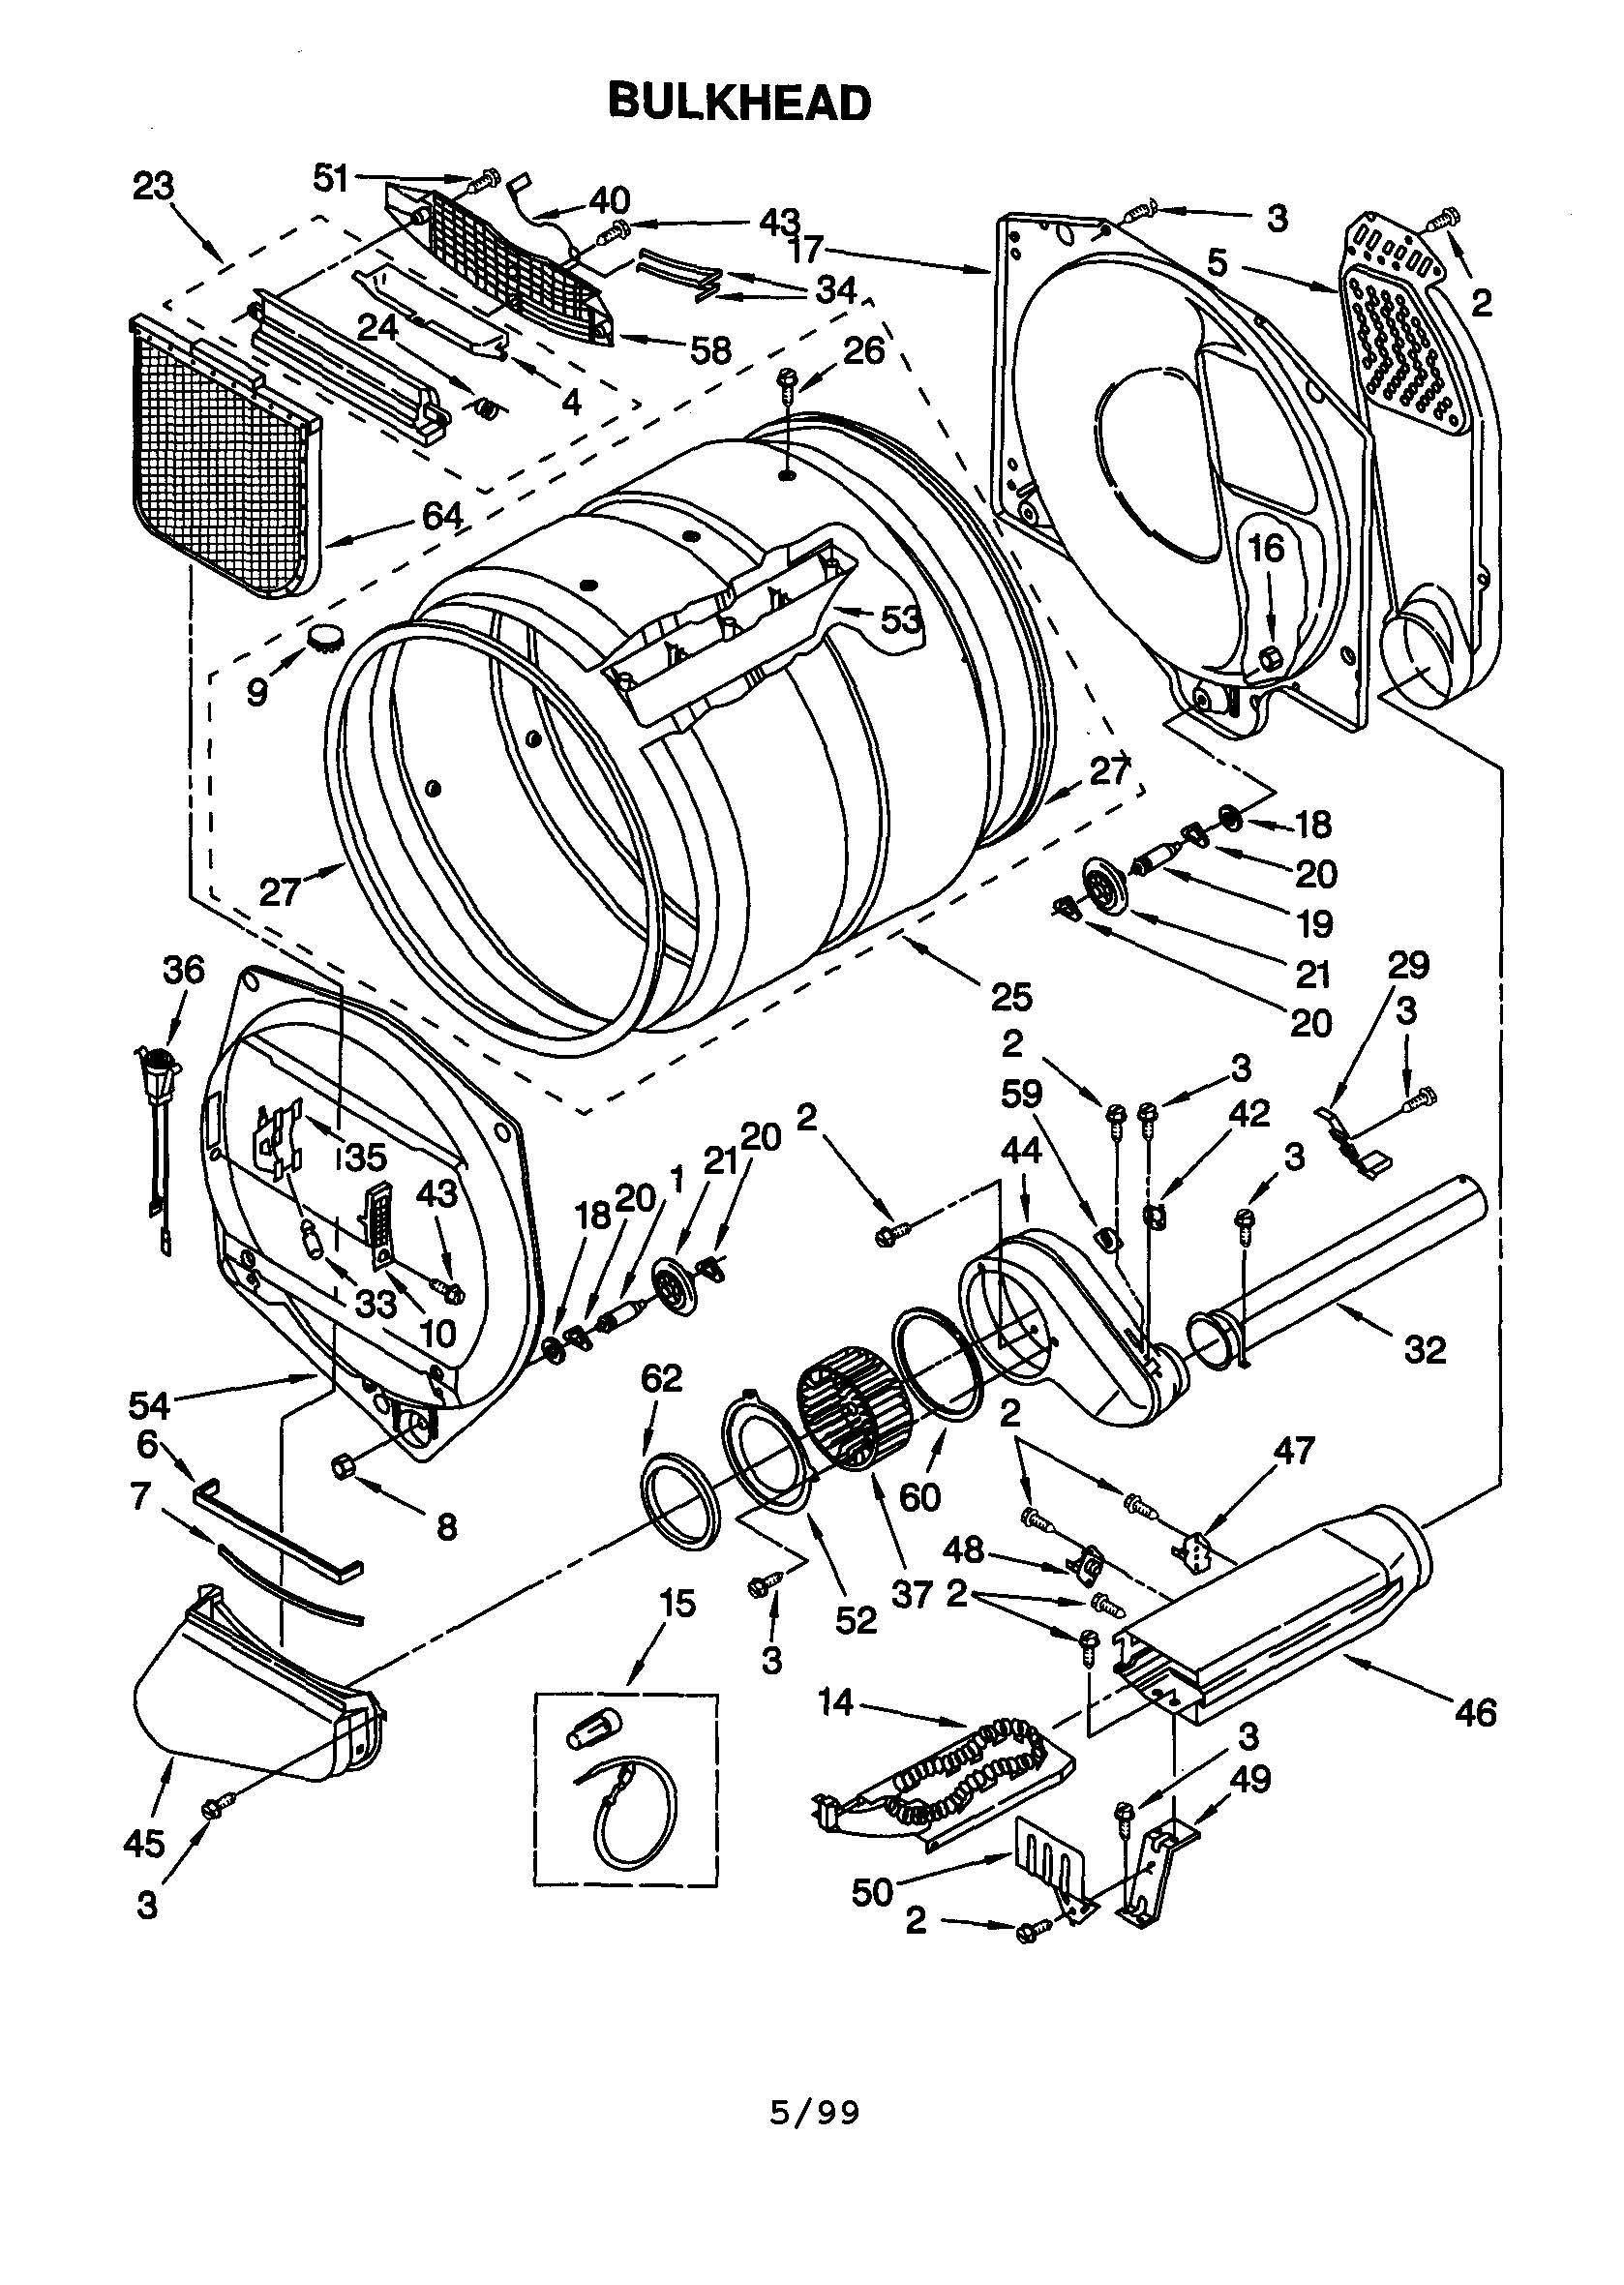 Kenmore Dryer Model 110 Wiring Diagram from f01.justanswer.com